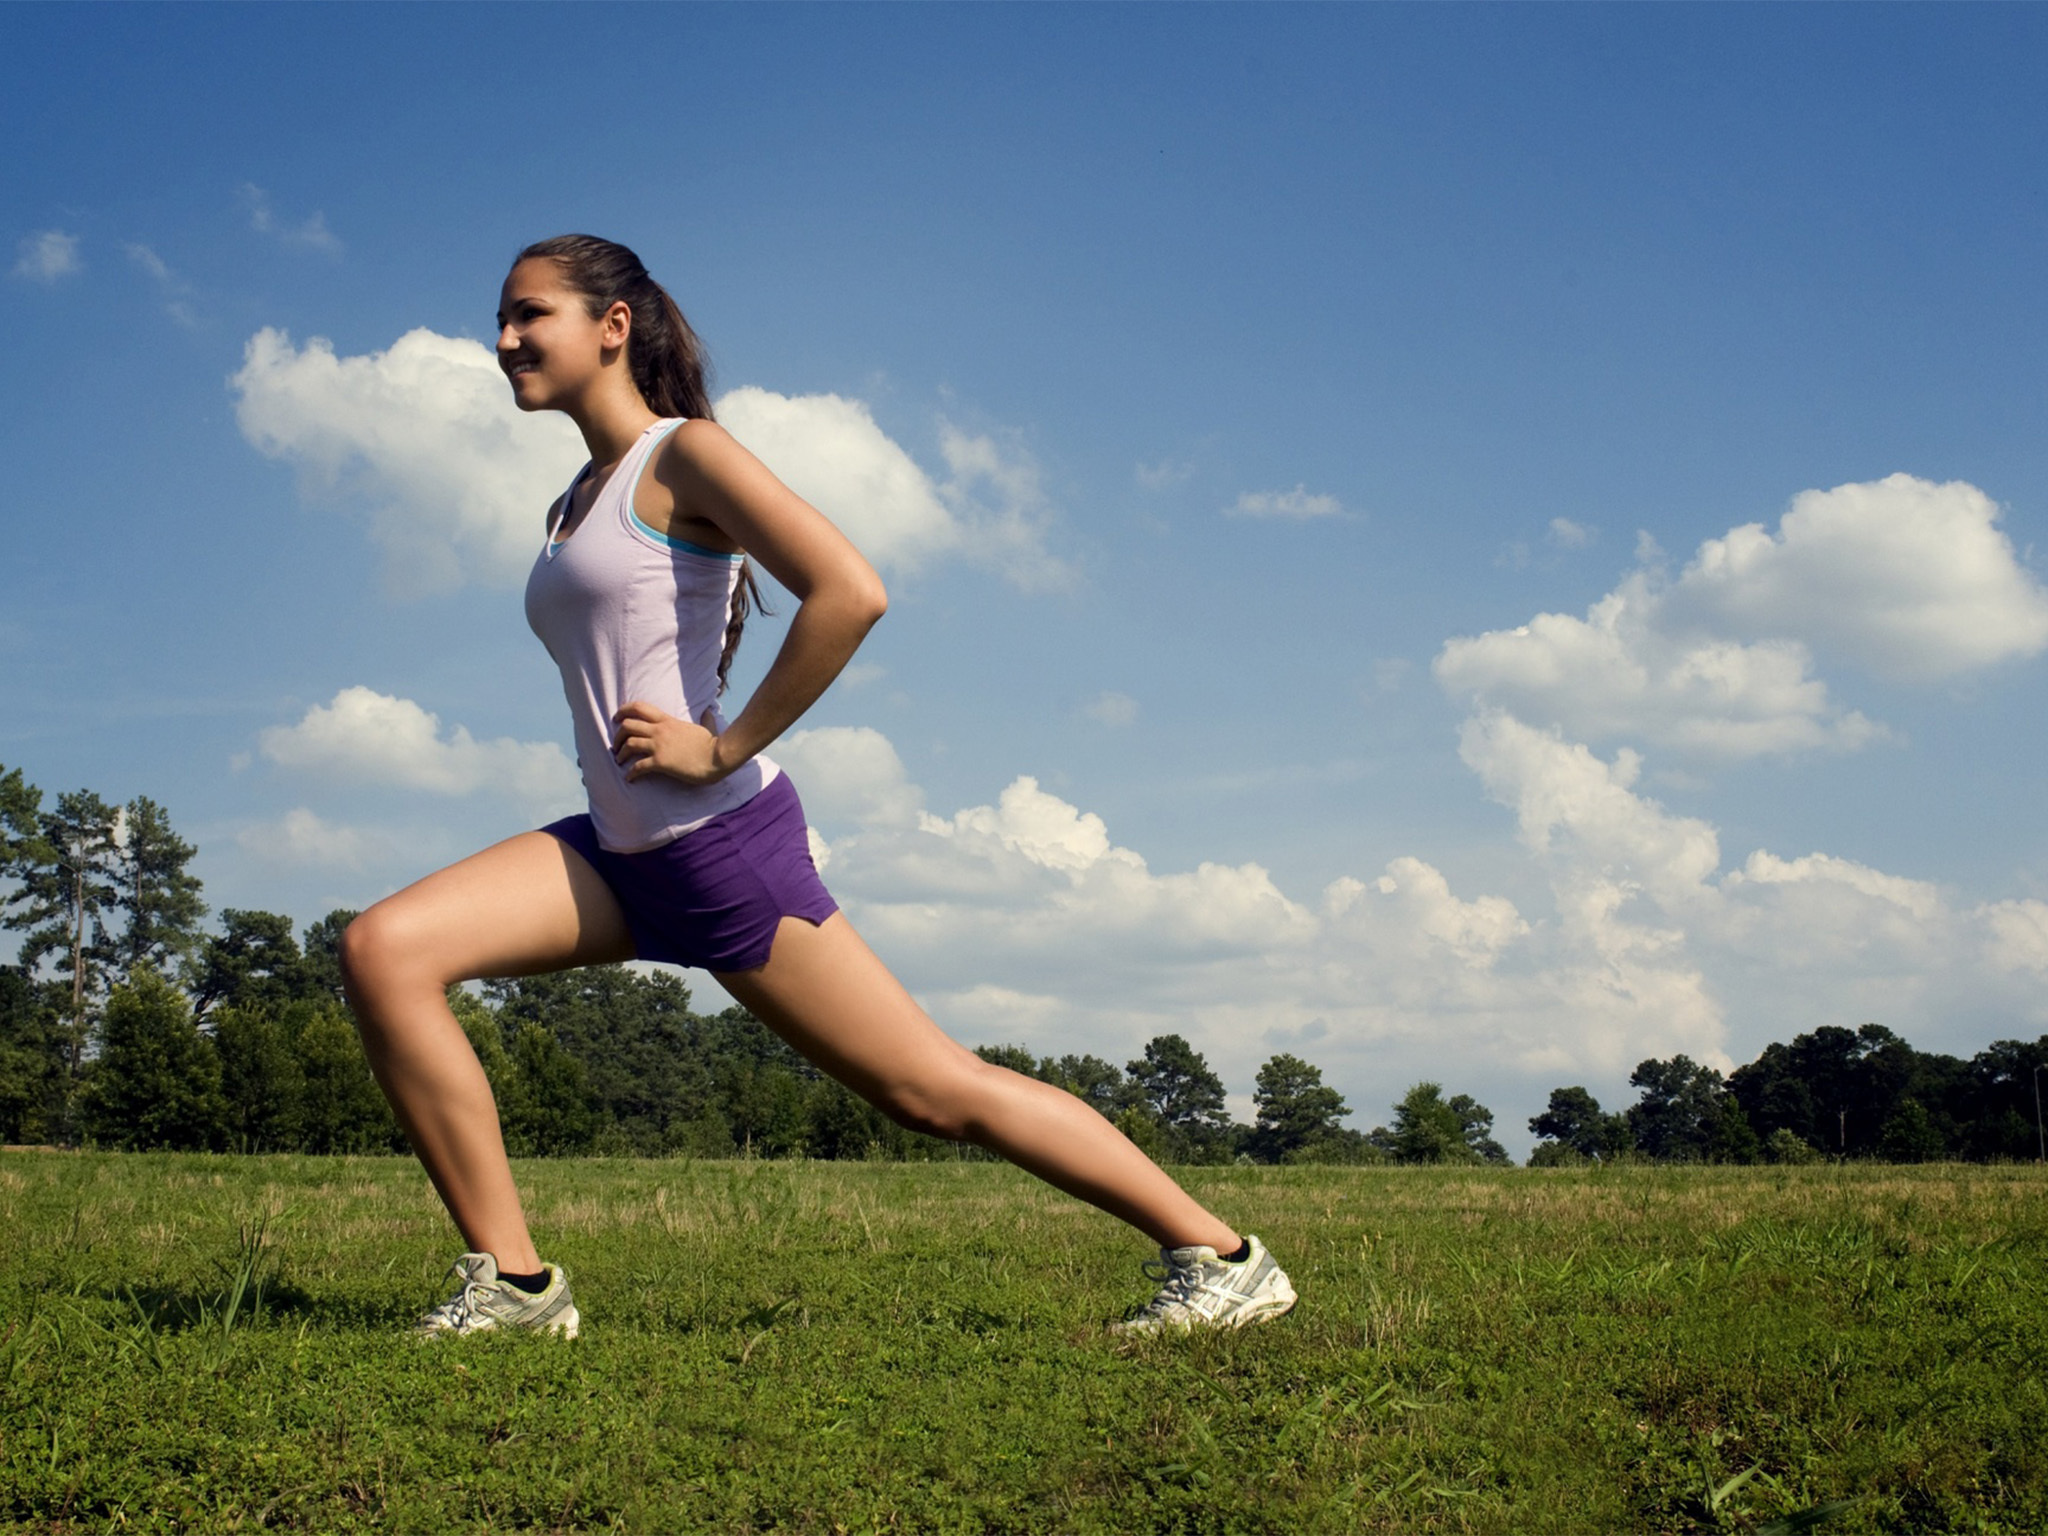 Generic woman running on grass